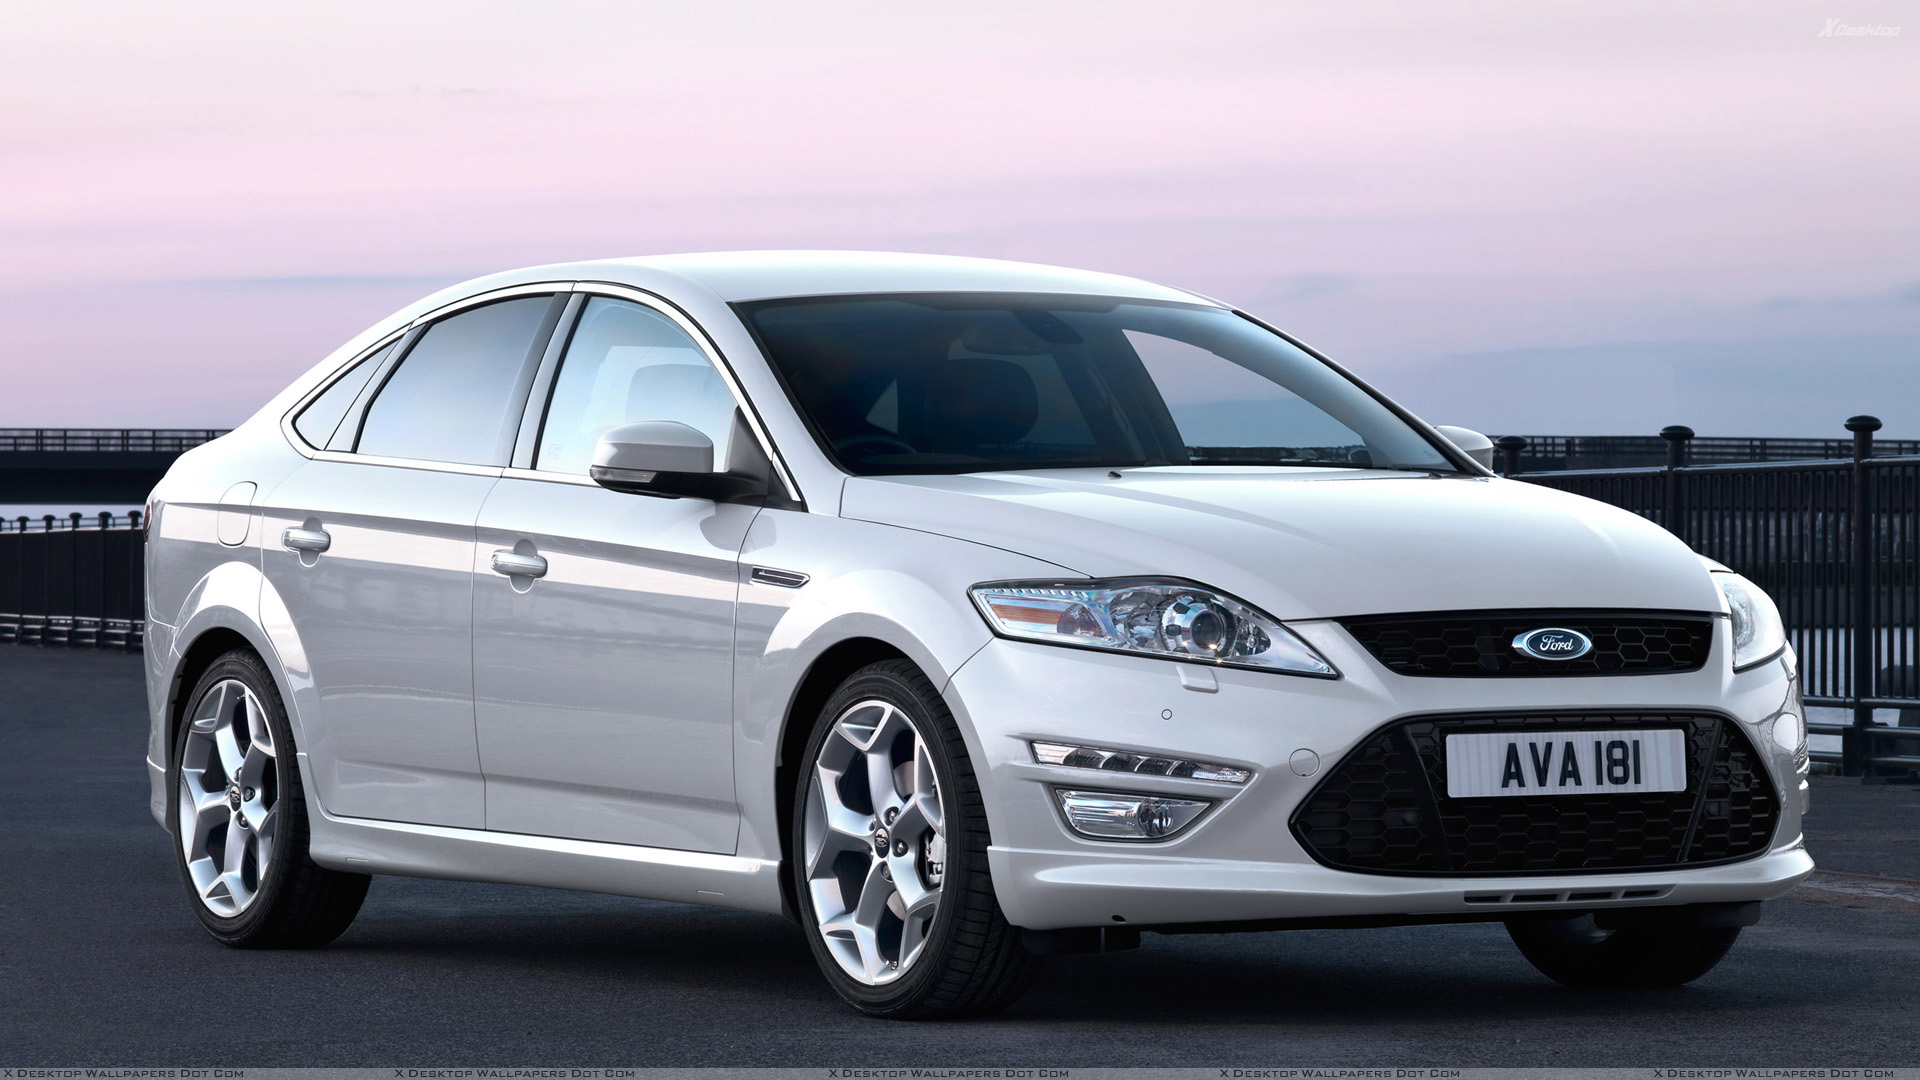 2012 Ford Mondeo #17